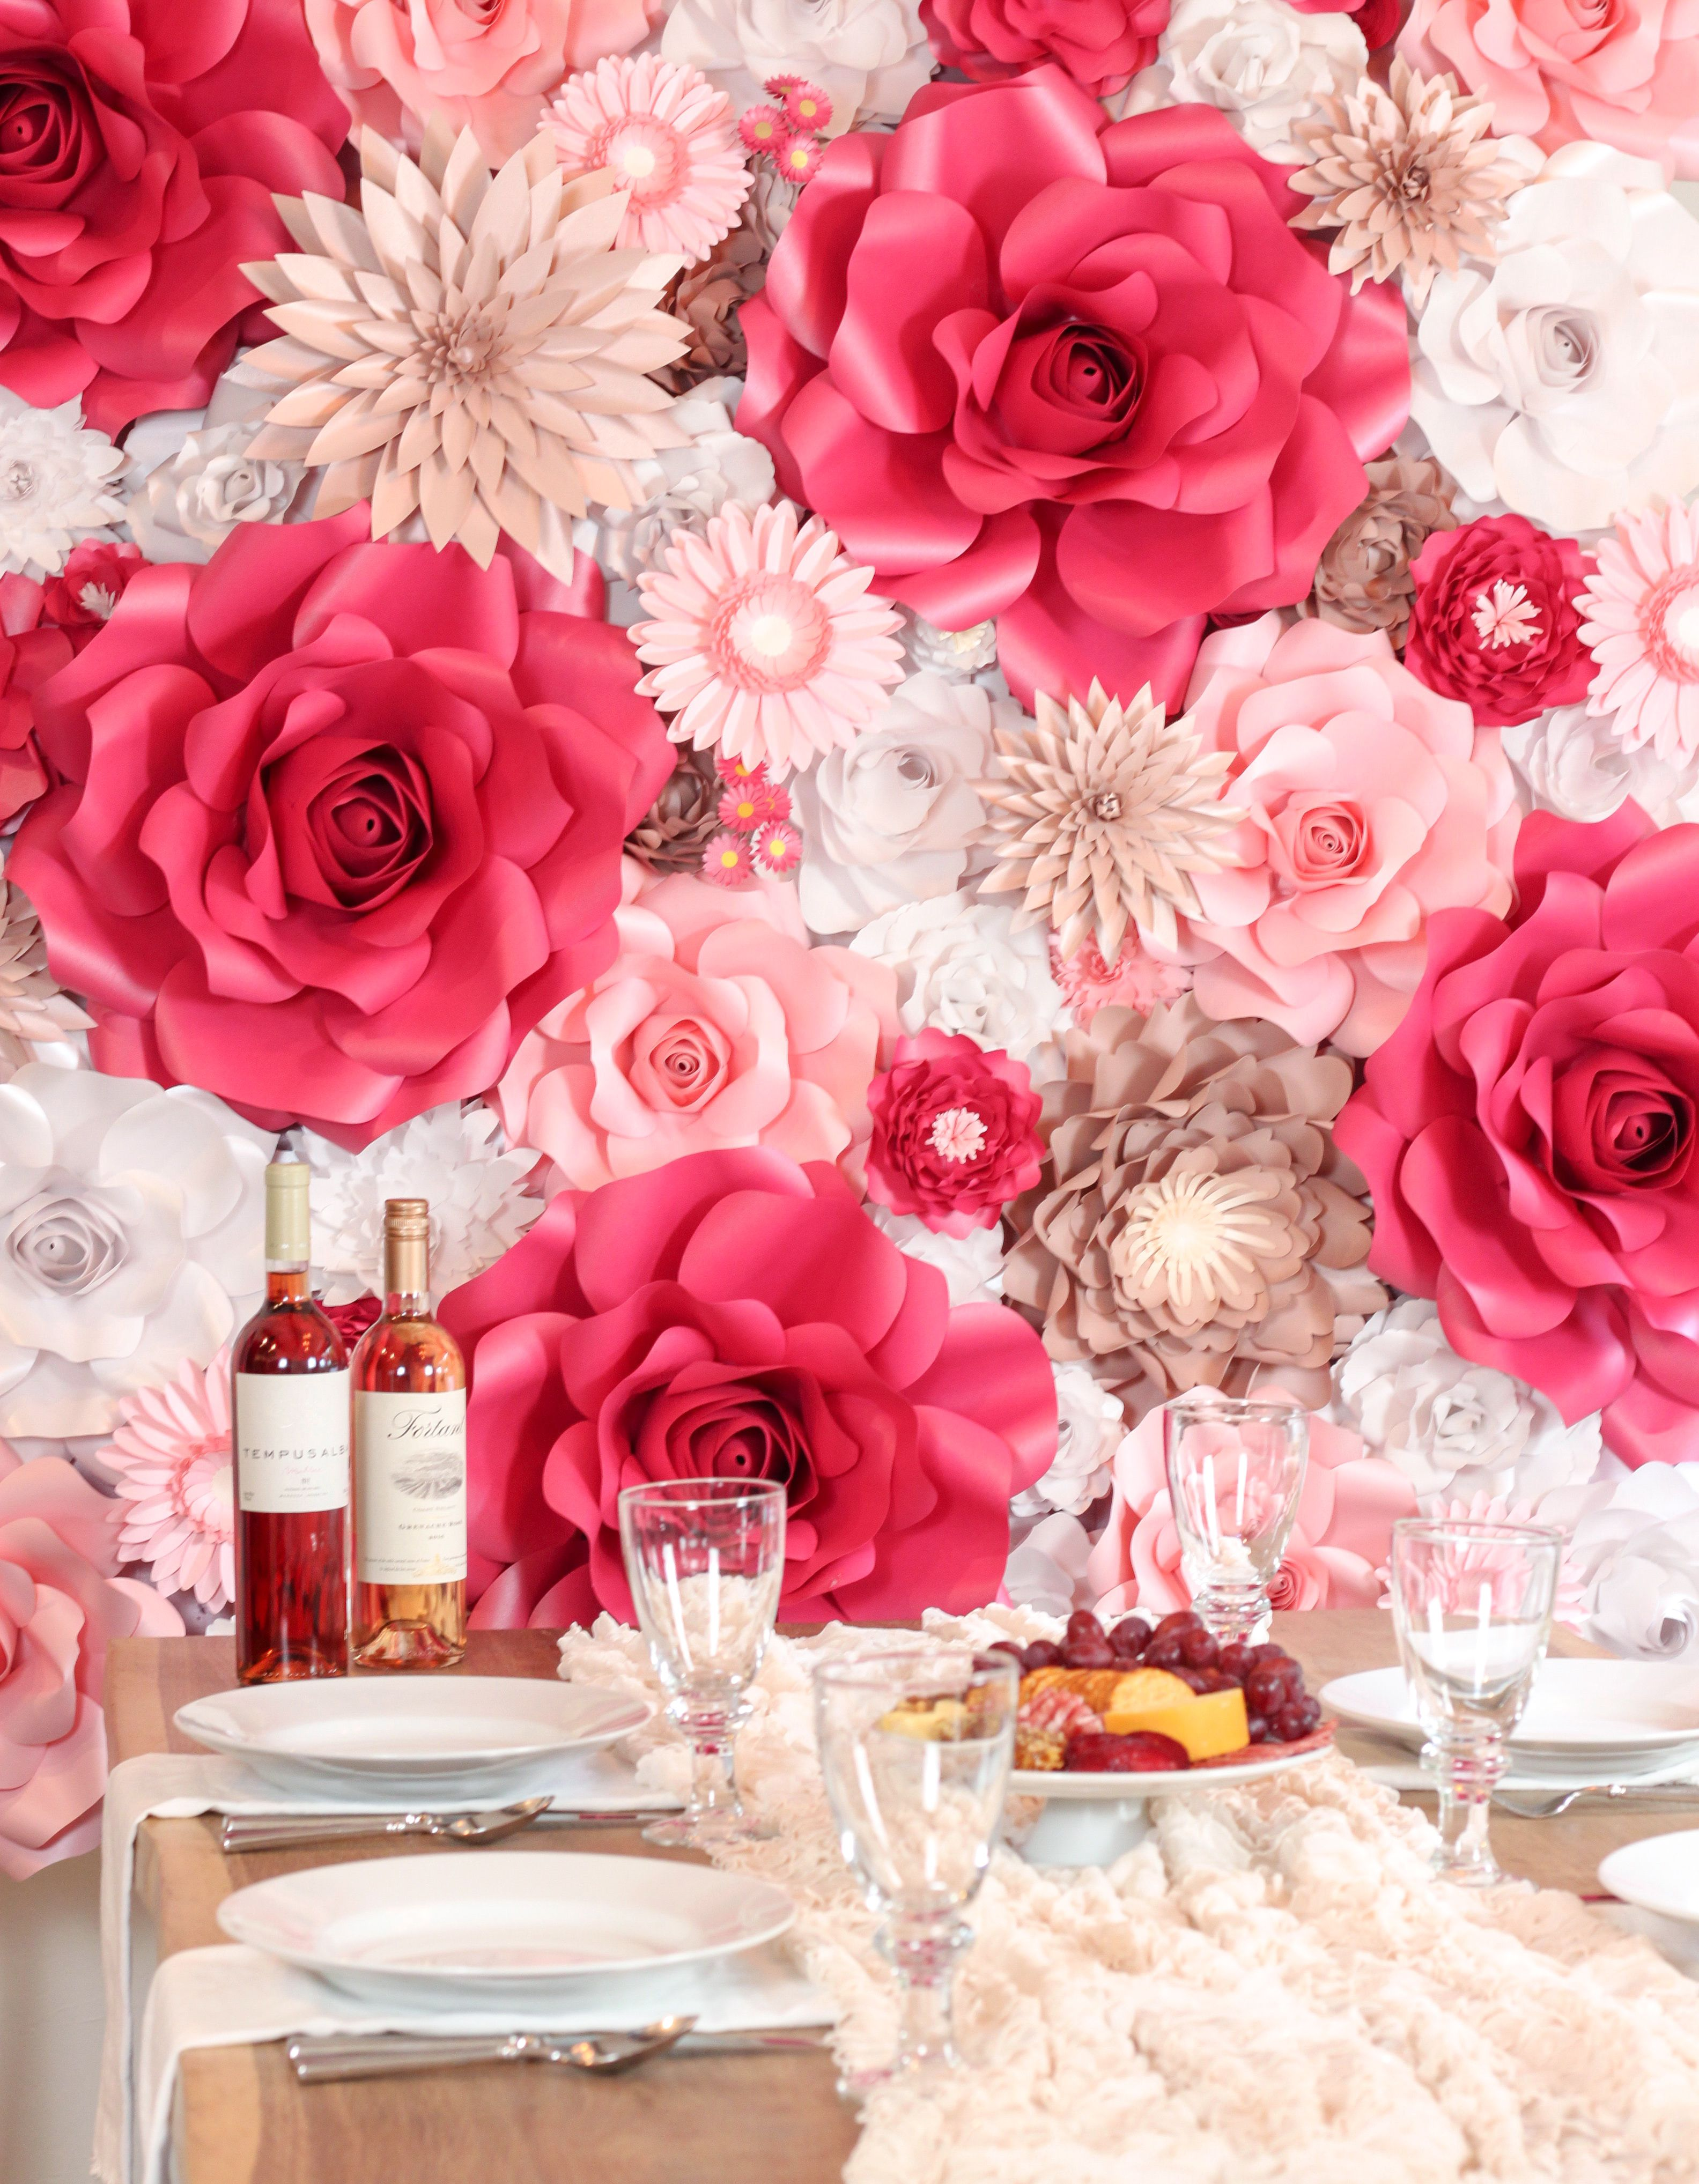 Host A Rose Tasting Party Using Rose Gold Pink And White Paper Flowers Rose All Day Paper Flower White Paper Flowers Paper Flower Backdrop Flower Backdrop